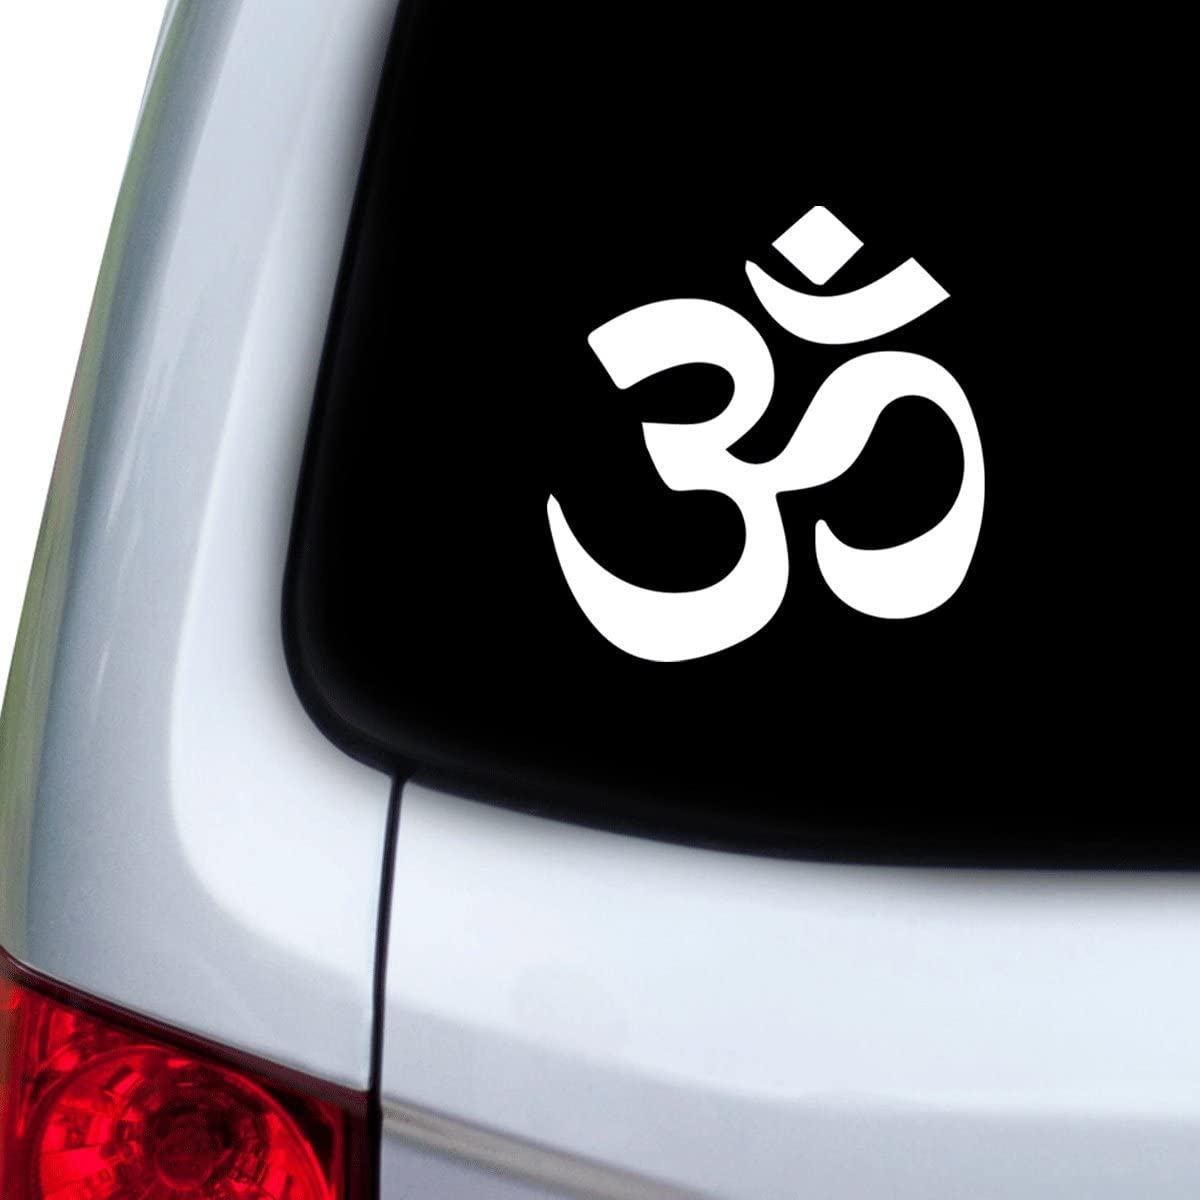 White Doors StickAny Car and Auto Decal Series Om Zen Logo Sticker for Windows Hoods